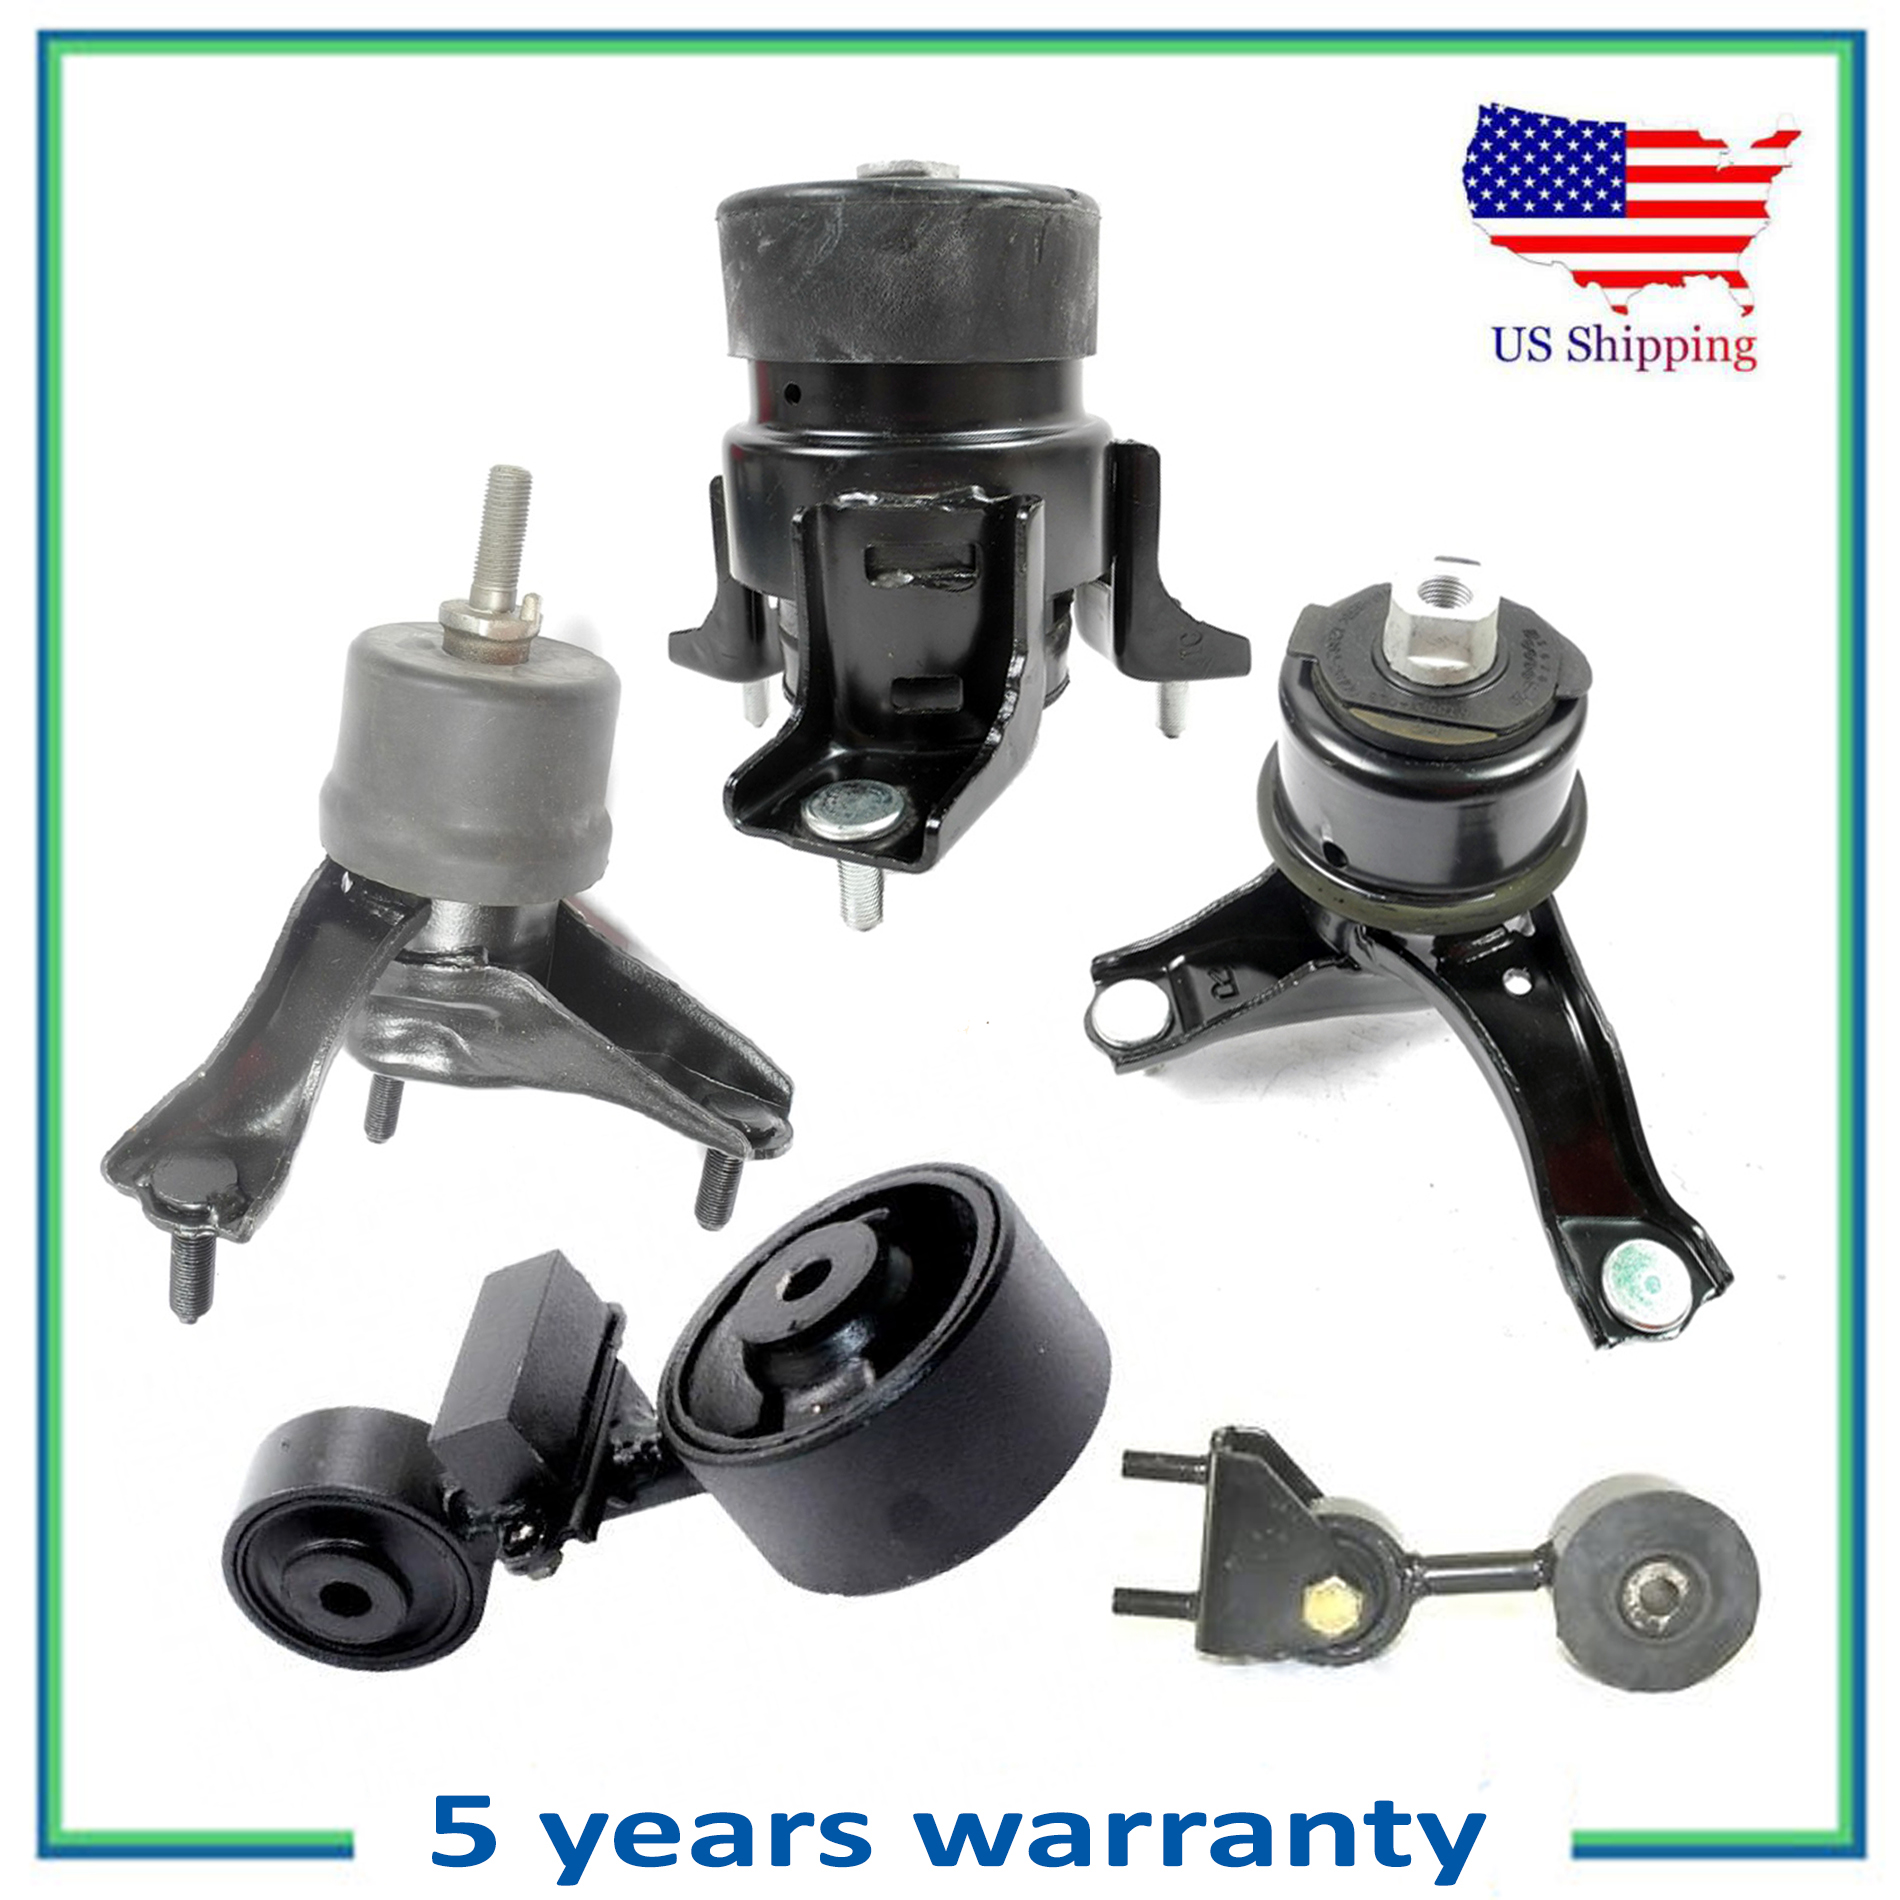 Engine Motor /& Trans Mount For 07-09 Toyota Camry 2.4L 4269 4274 4288 4295 62009